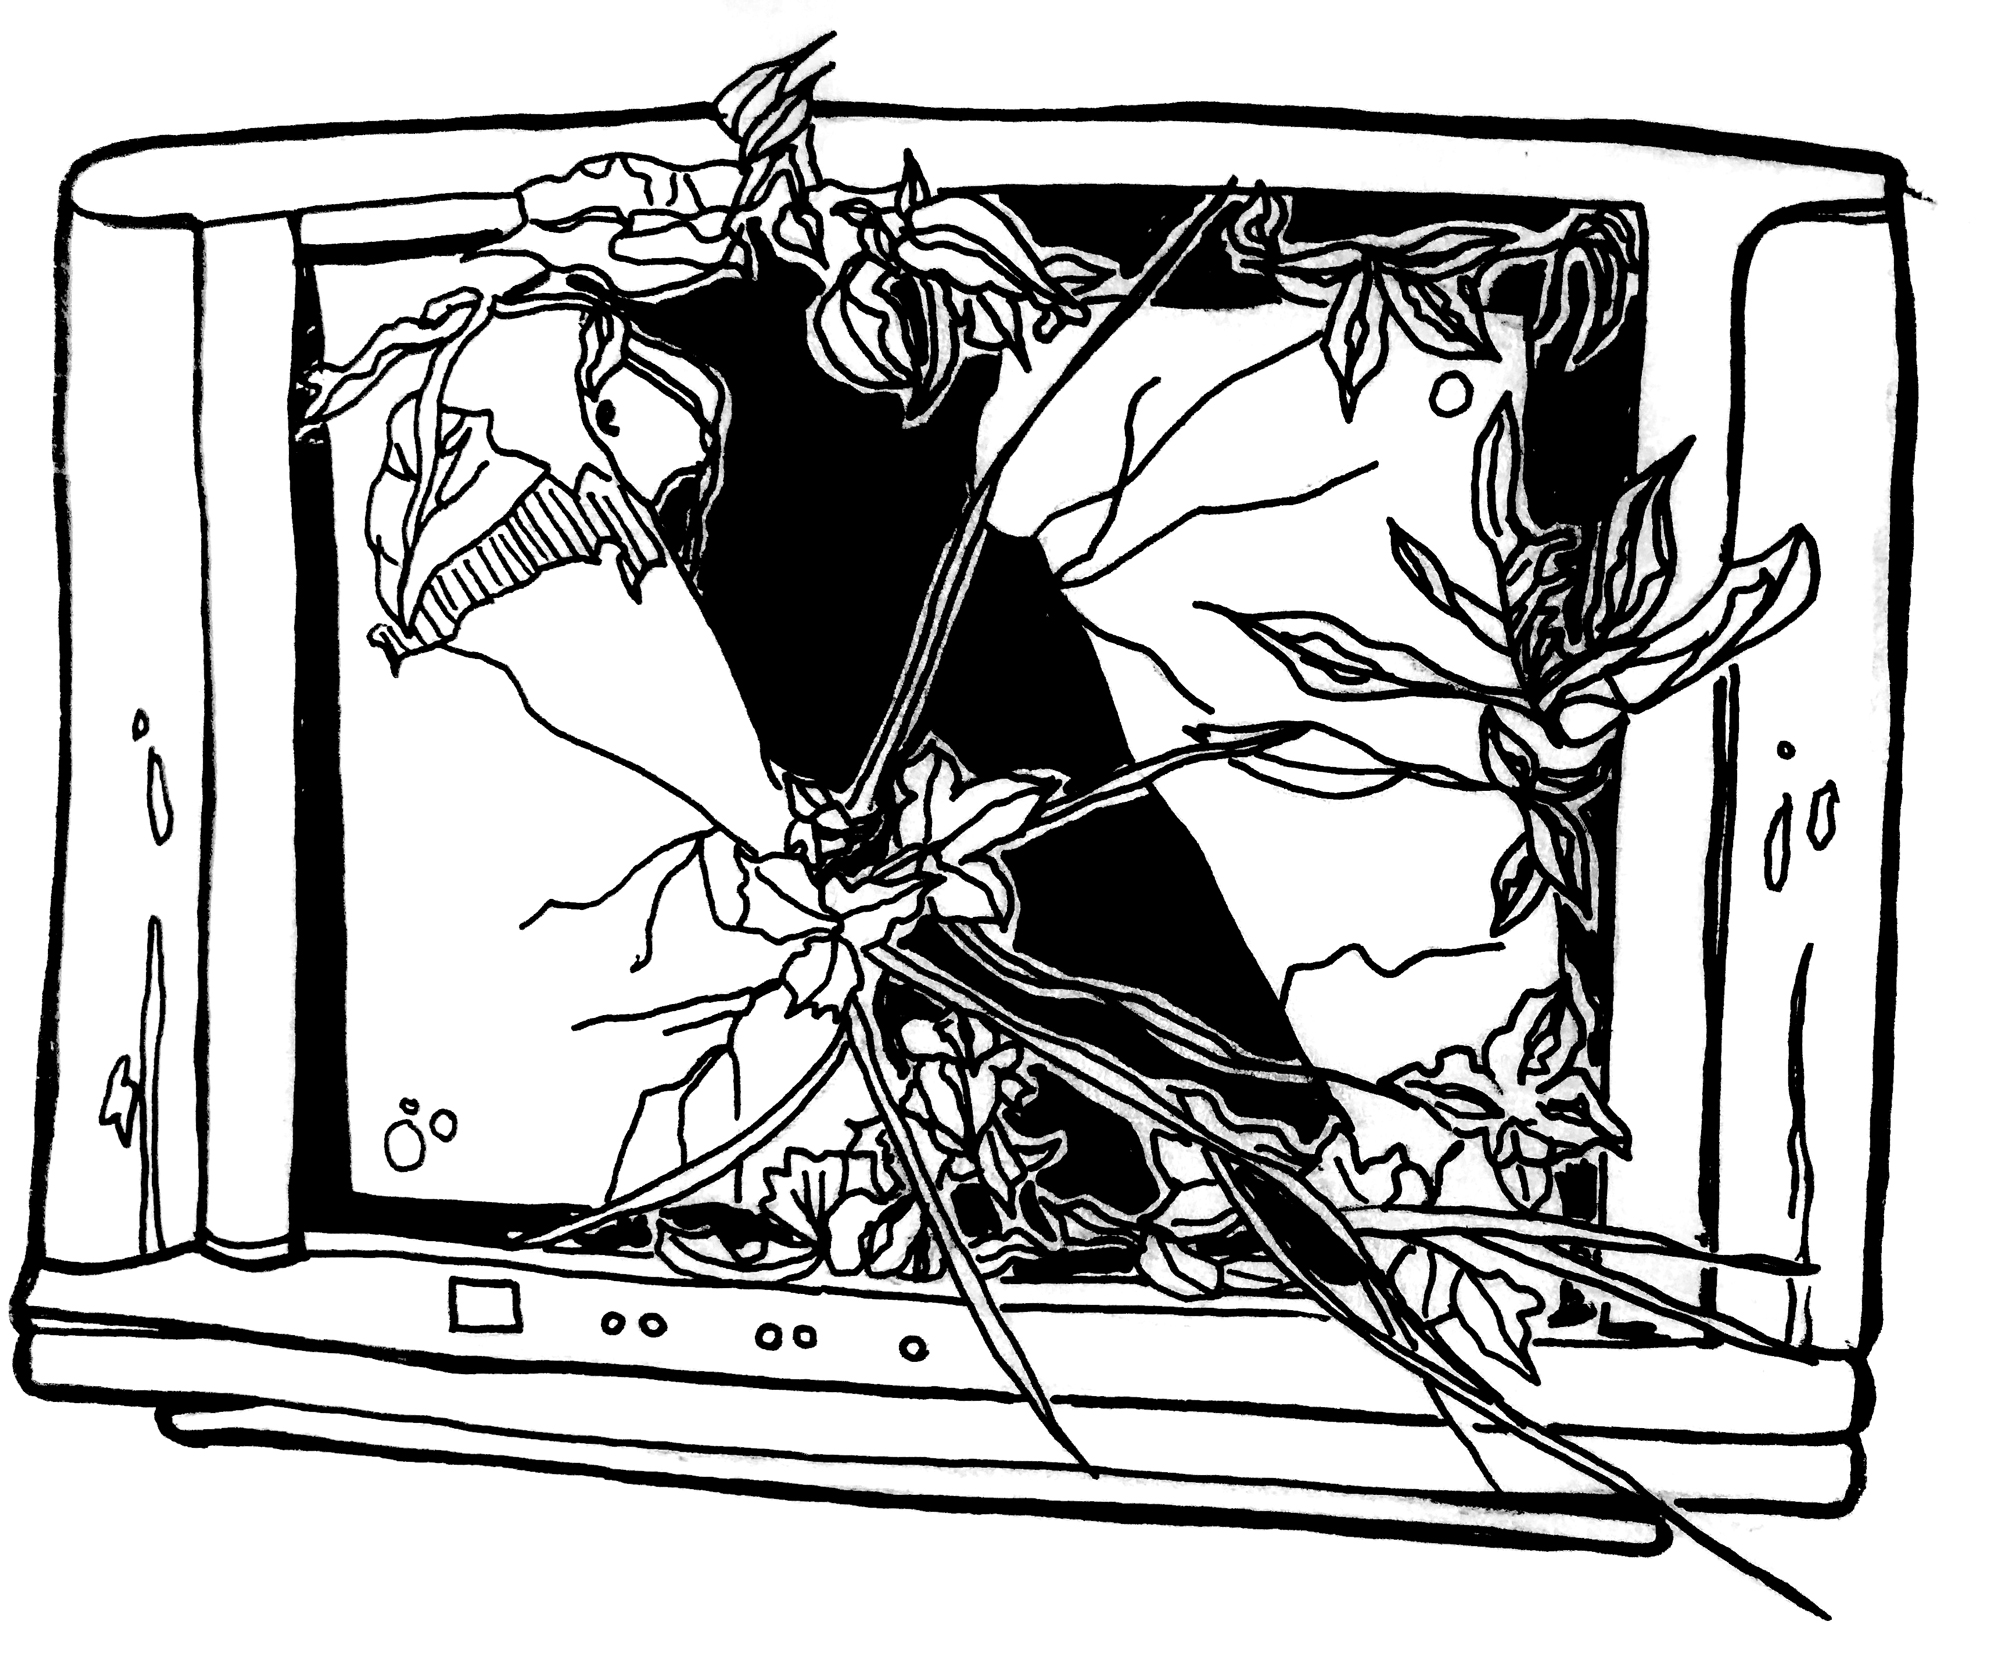 A black and white illustration of a tv with a cracked screen that has plants growing out of it. The tv and the screen are white and there's a large black hole in the middle of the screen where it's cracked. Plants are growing out of the middle, sides, and top. There are buttons on the bottom of the tv's frame. Illustration by Rachel Speck.